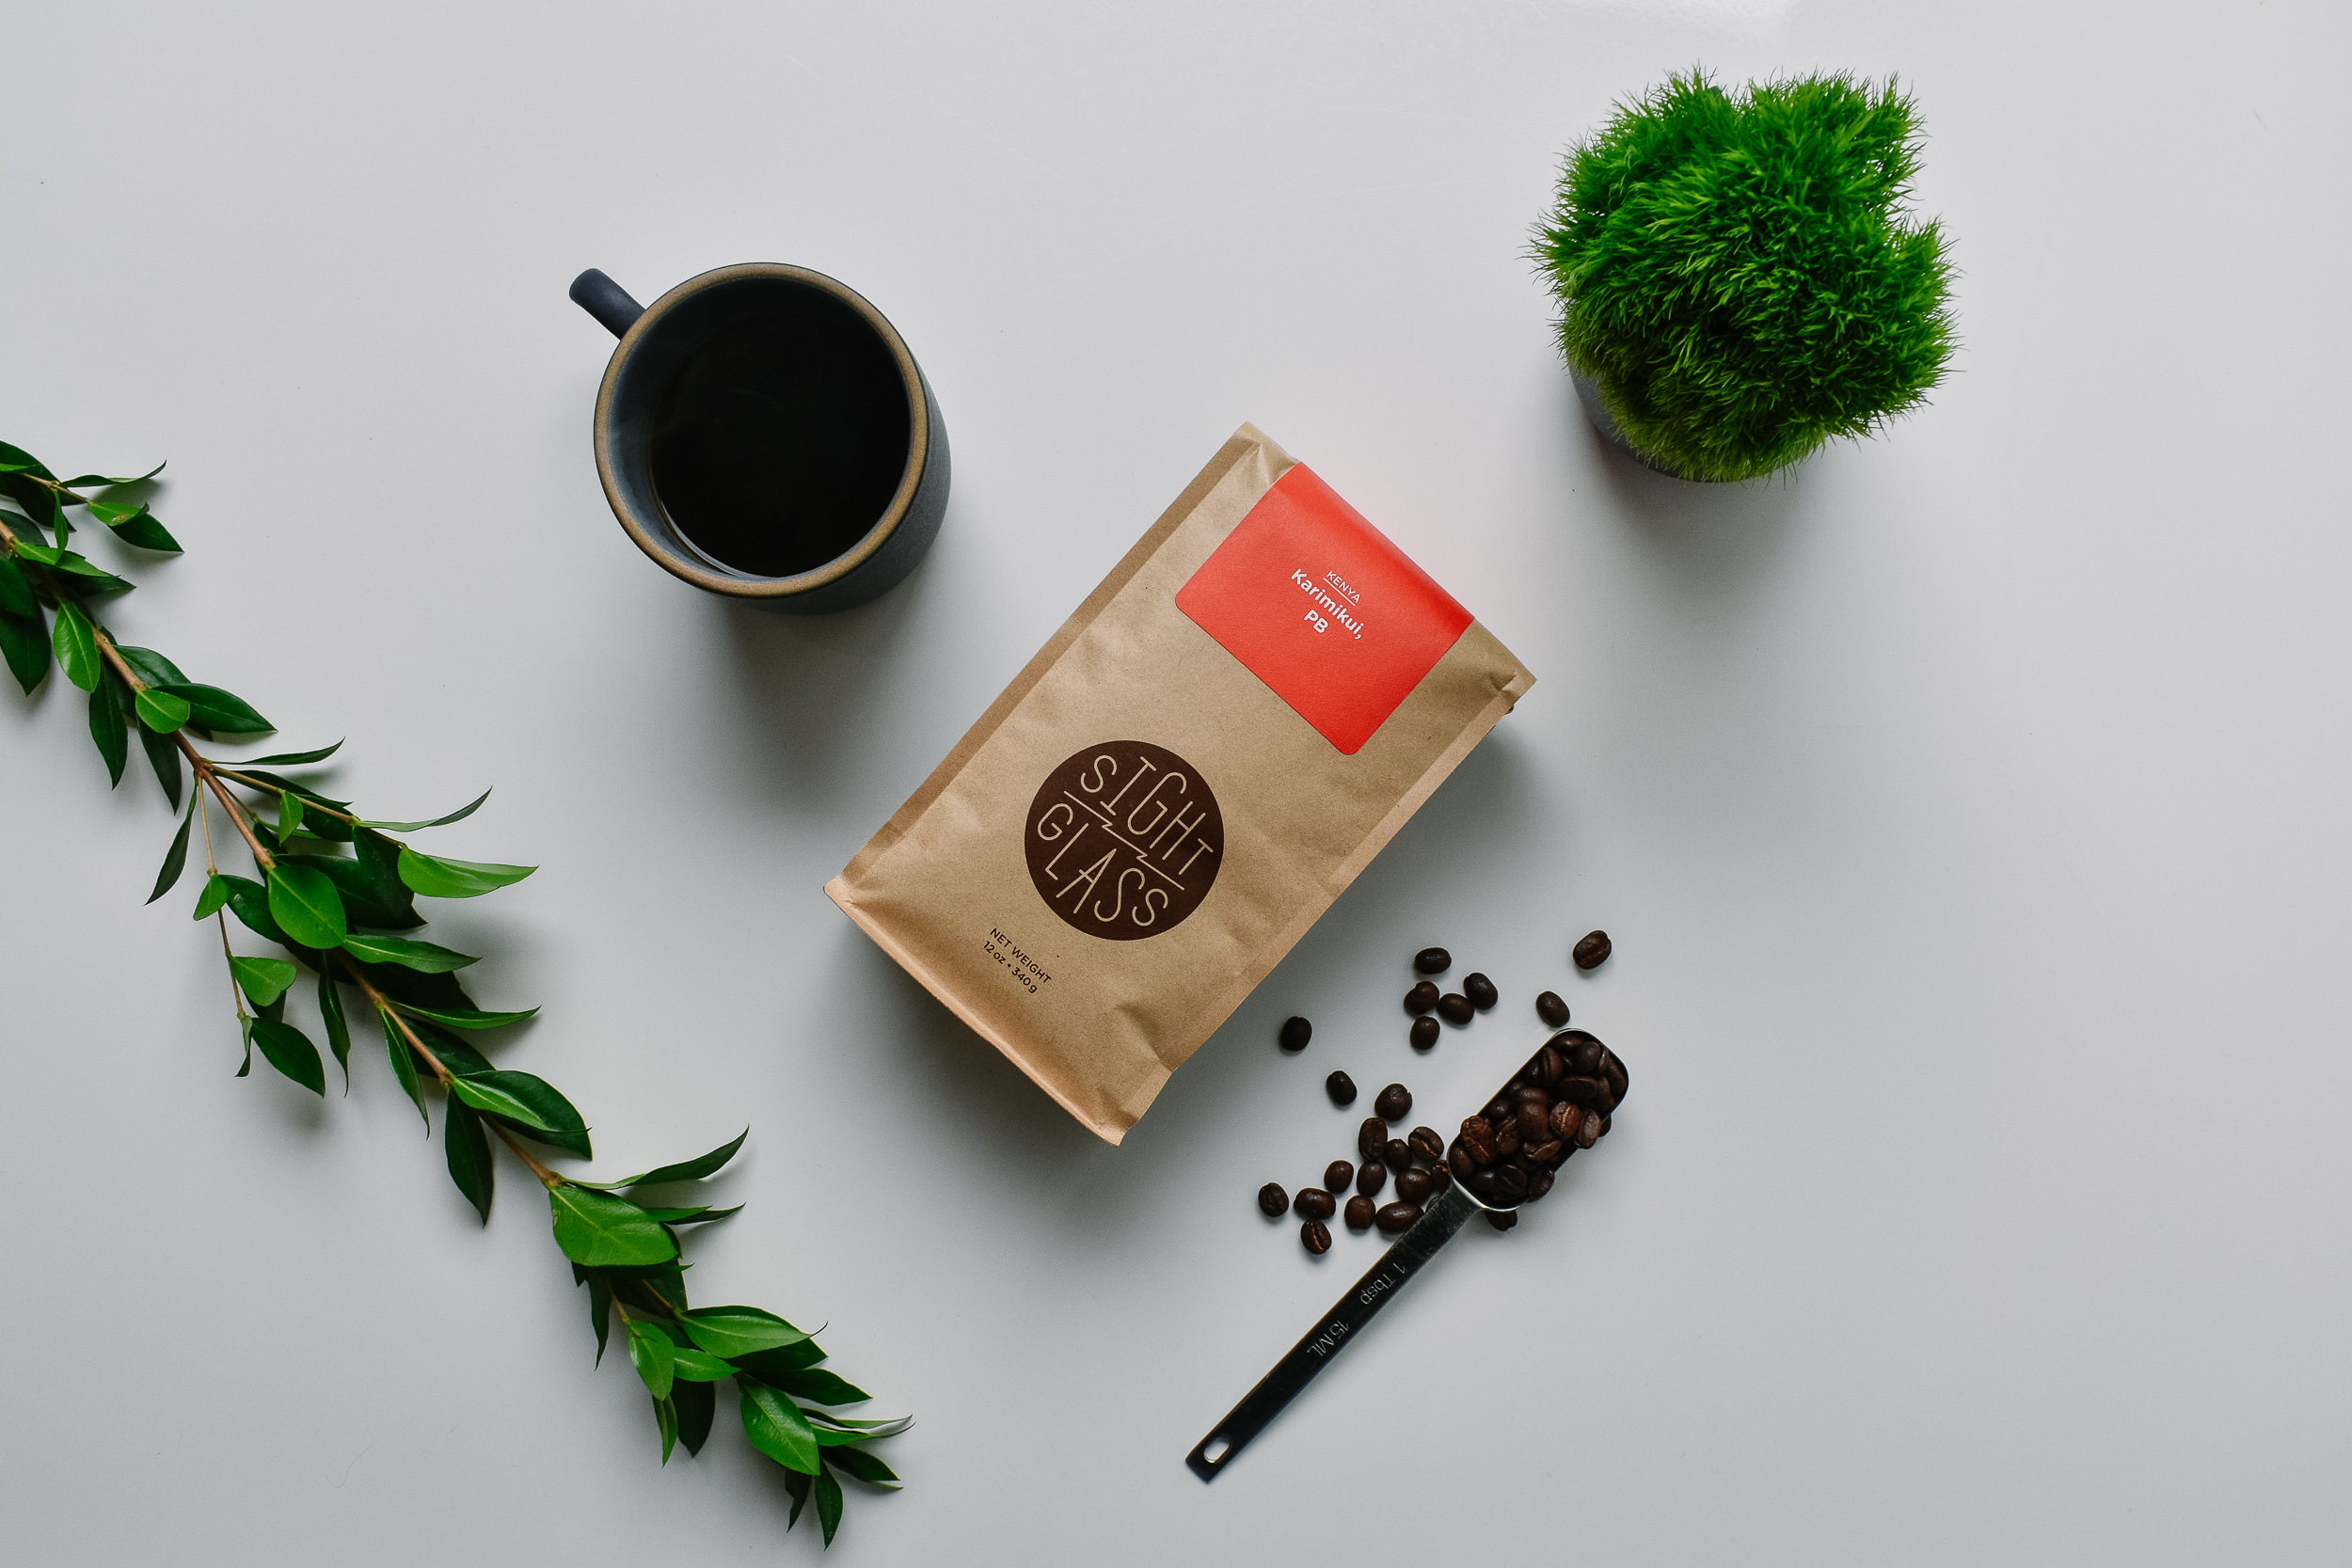 Sightglass Coffee - Sightglass is an independent coffee company in San Francisco. They source their beans directly from origin and roast them in a single vintage PROBAT roaster. The beans are roasted, packaged, shipped, and brewed in their headquarters.